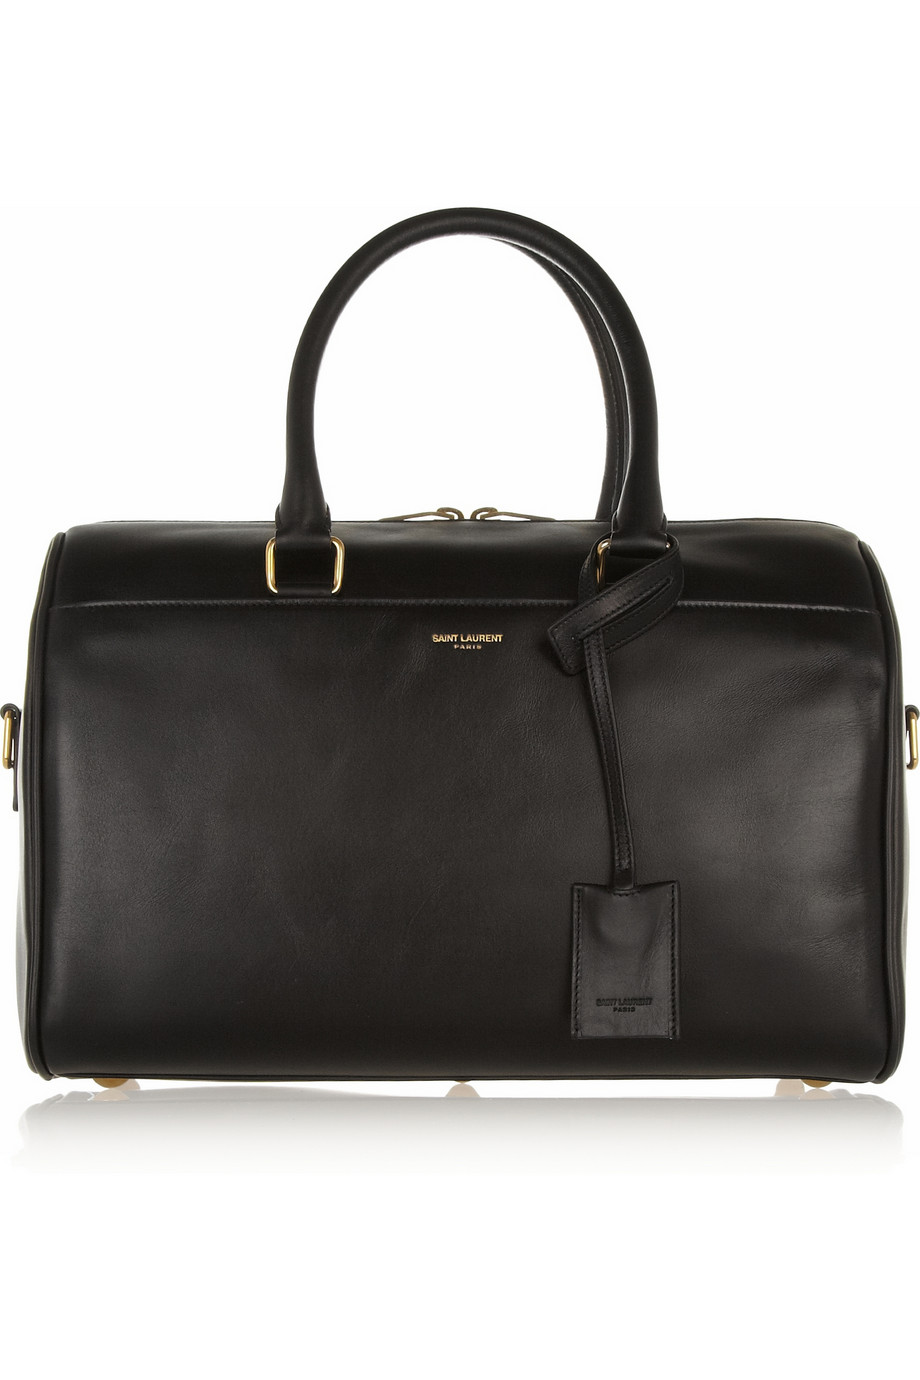 lyst saint laurent classic duffle 6 leather bag in black. Black Bedroom Furniture Sets. Home Design Ideas